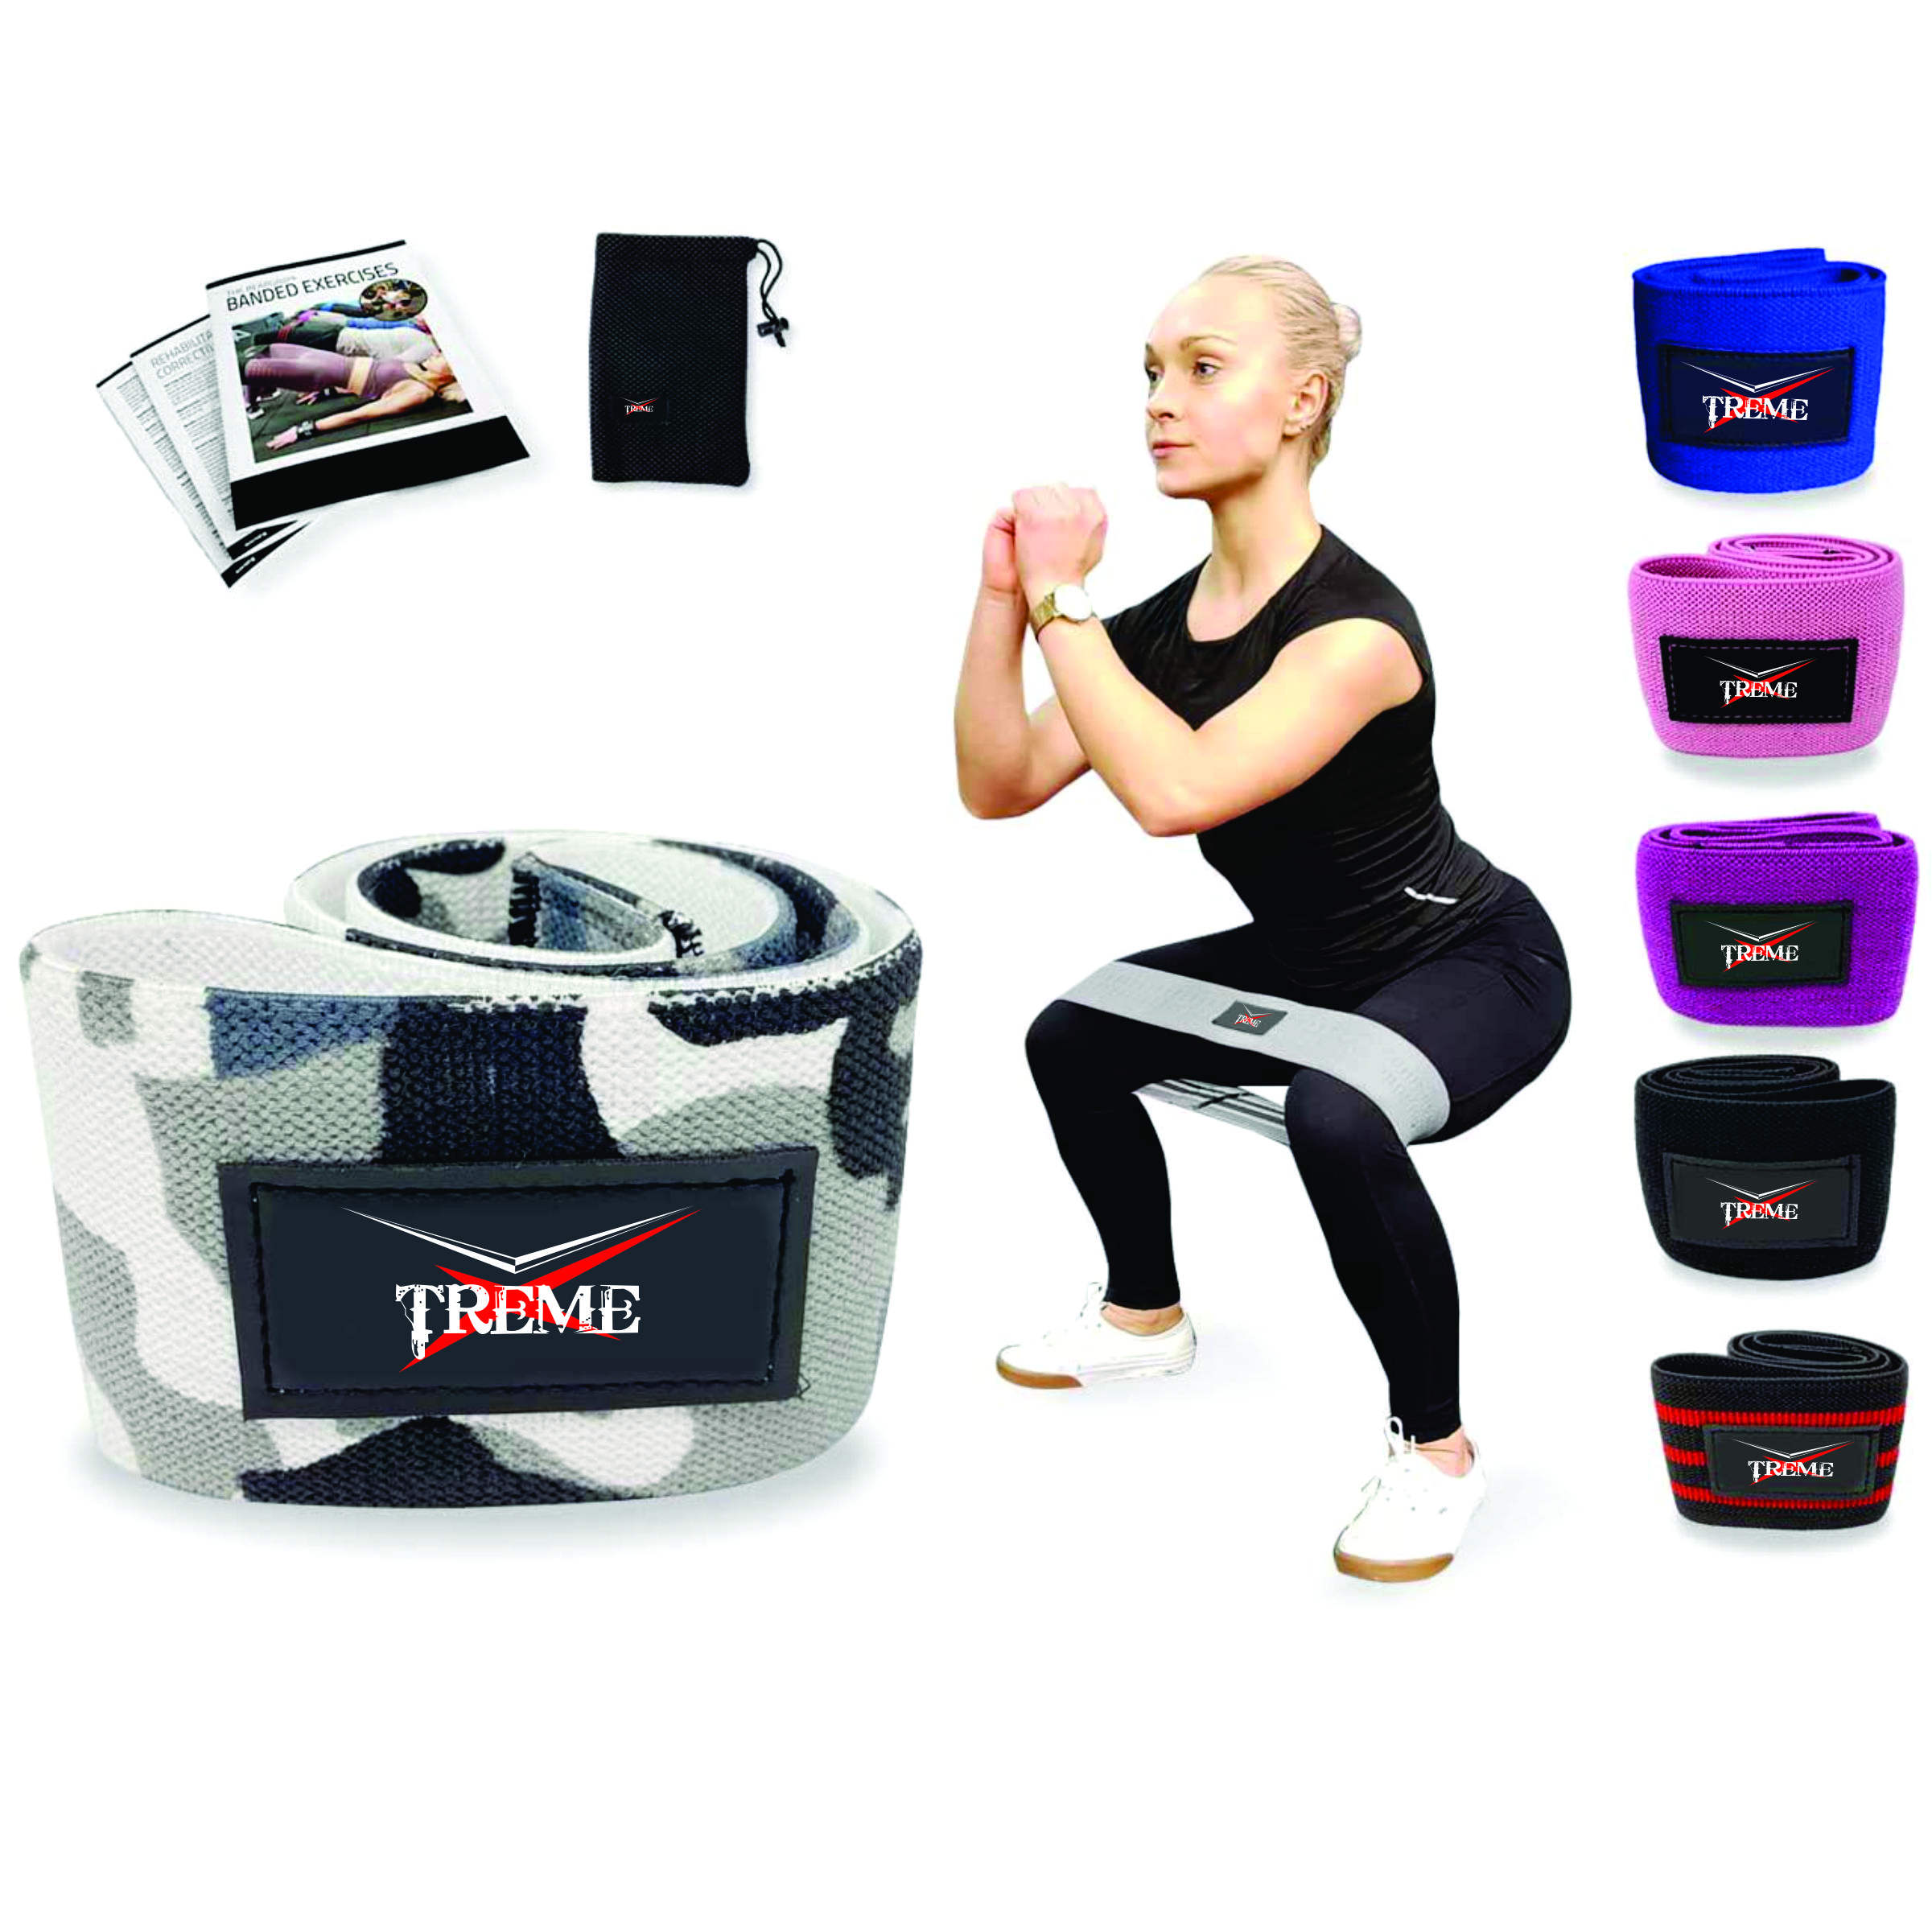 Hip Band Cirkel Glute Activering Band Heavy Elastische Katoen In Twee Maten Ideaal Voor Warm Up